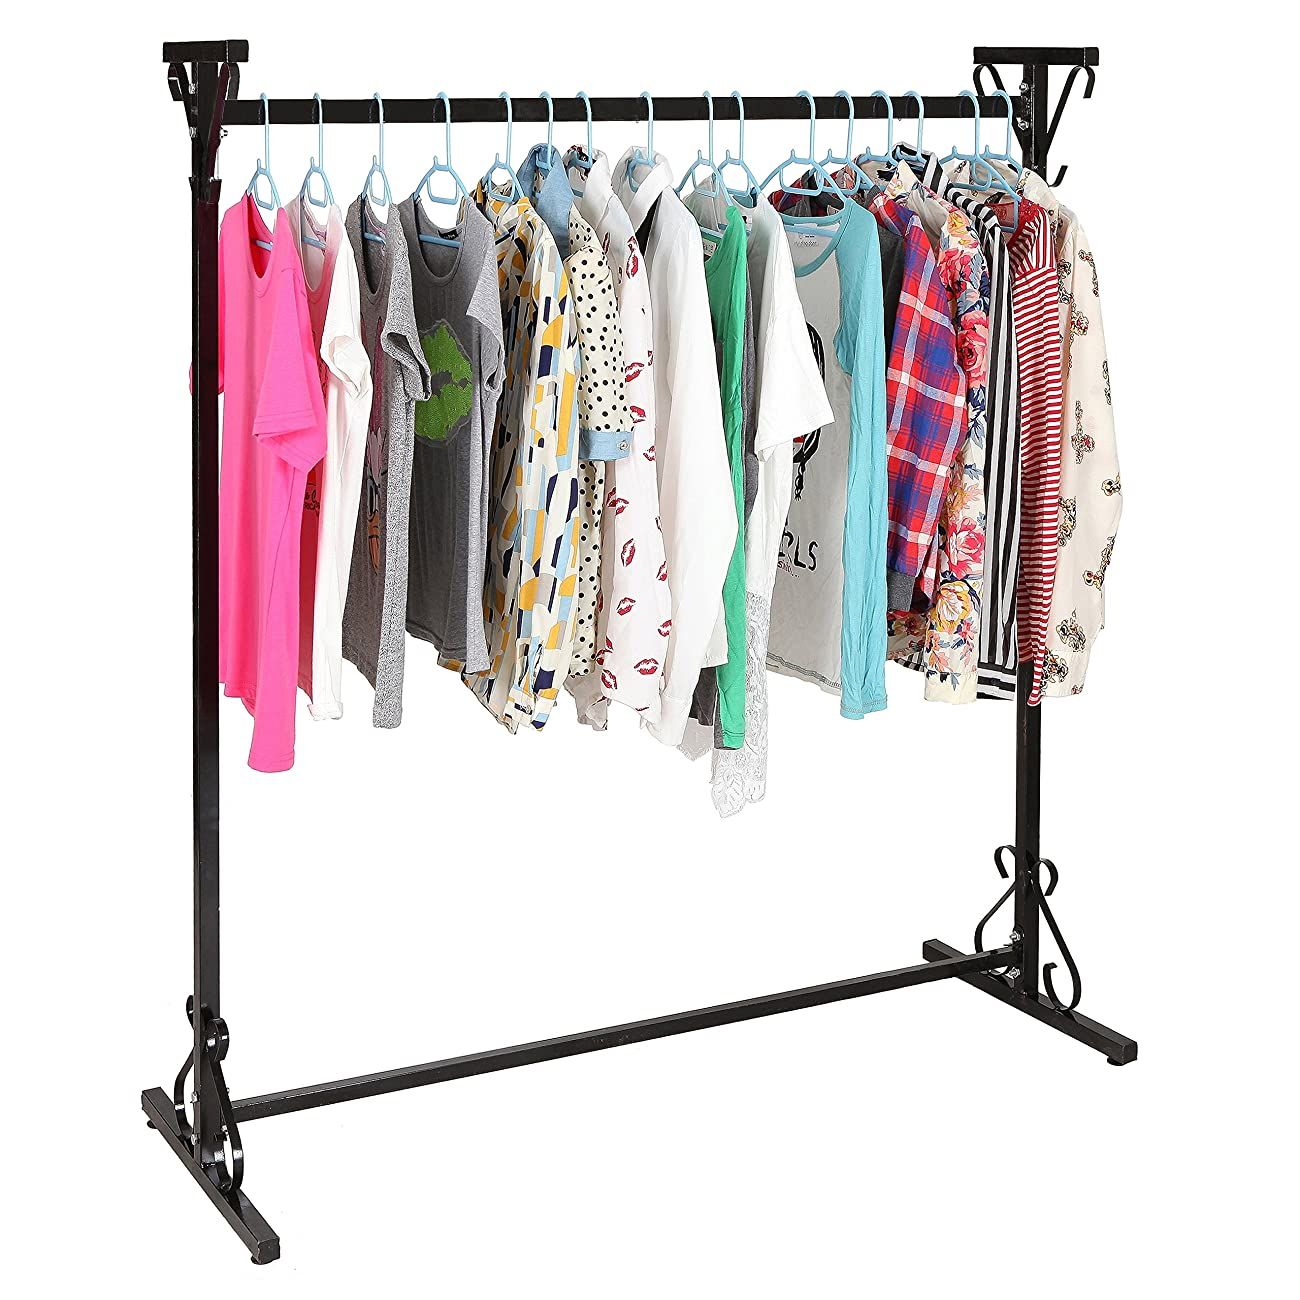 Professional 4-Ft Long Victorian Scrollwork Vintage Black Iron Clothing Hanger / Garment Rack - MyGift® 0